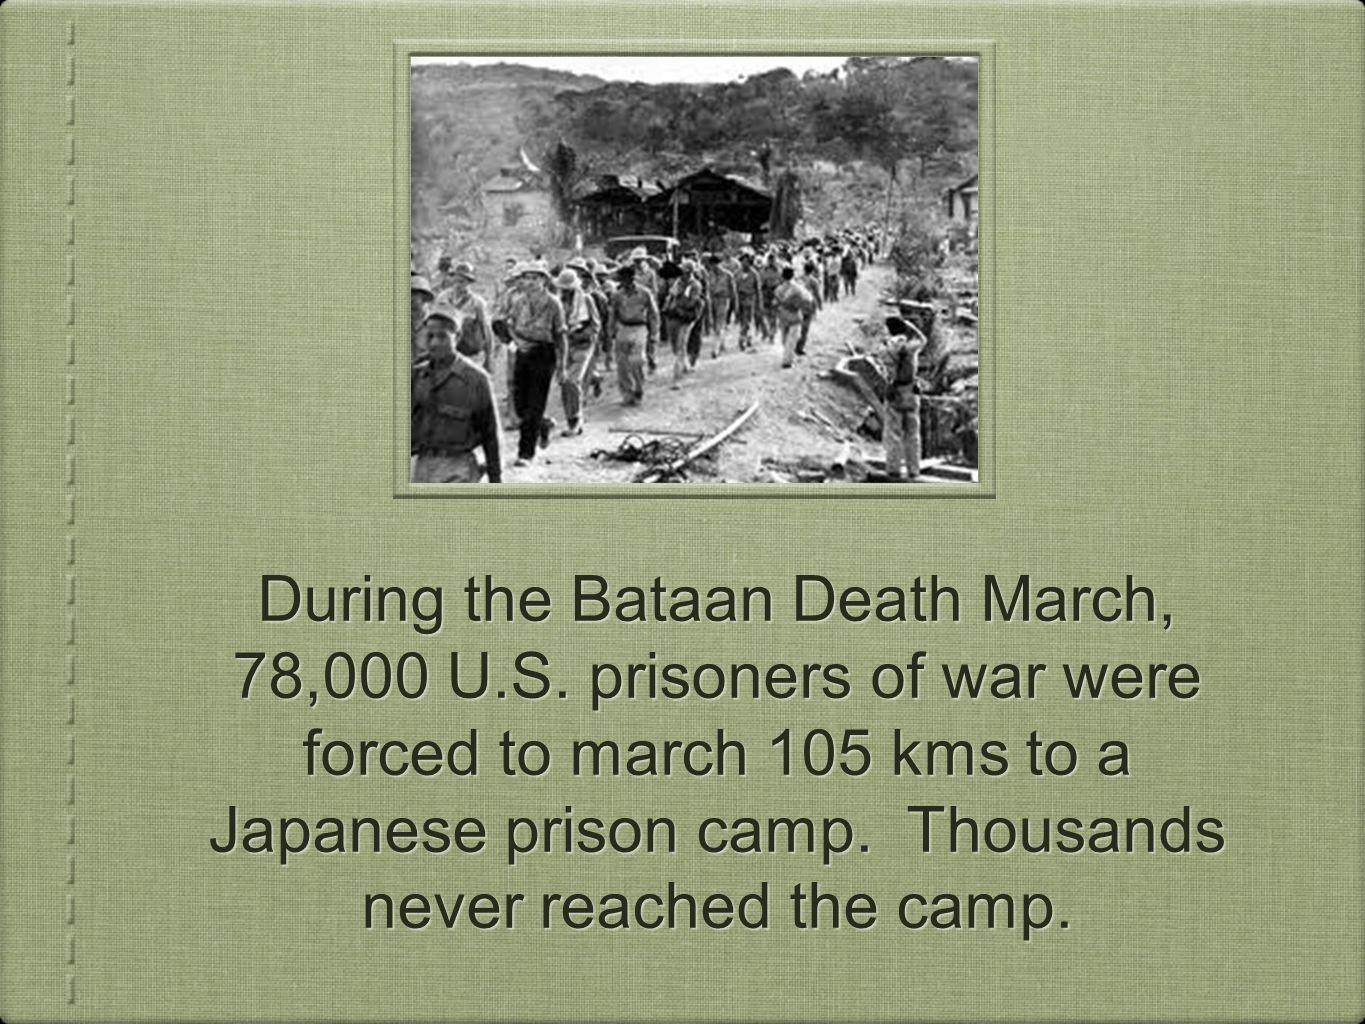 During the Bataan Death March, 78,000 U.S. prisoners of war were forced to march 105 kms to a Japanese prison camp. Thousands never reached the camp.